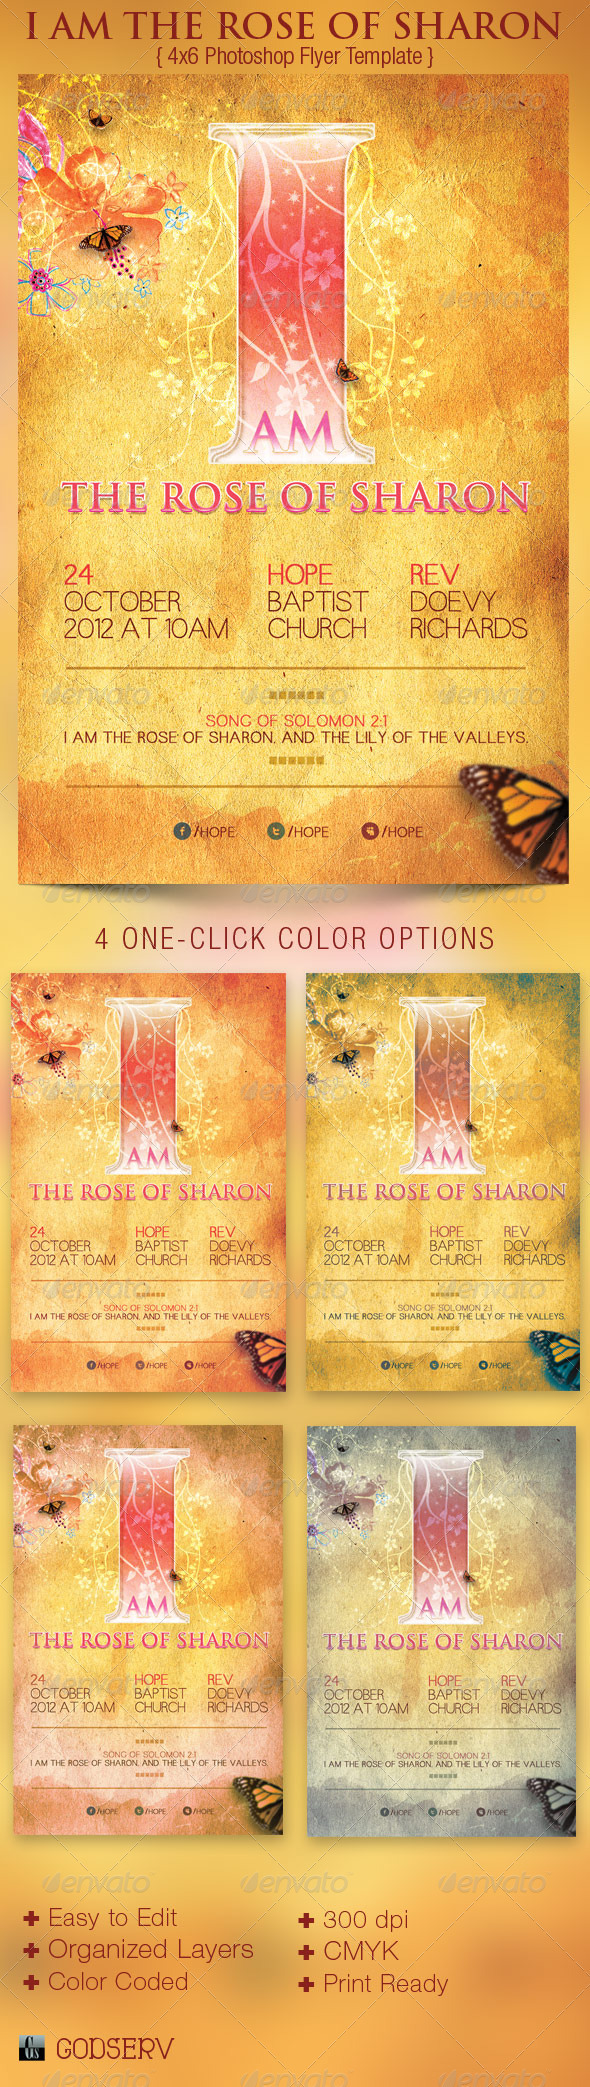 Rose of Sharon Church Flyer Poster Template | Sermon series, Flyer ...